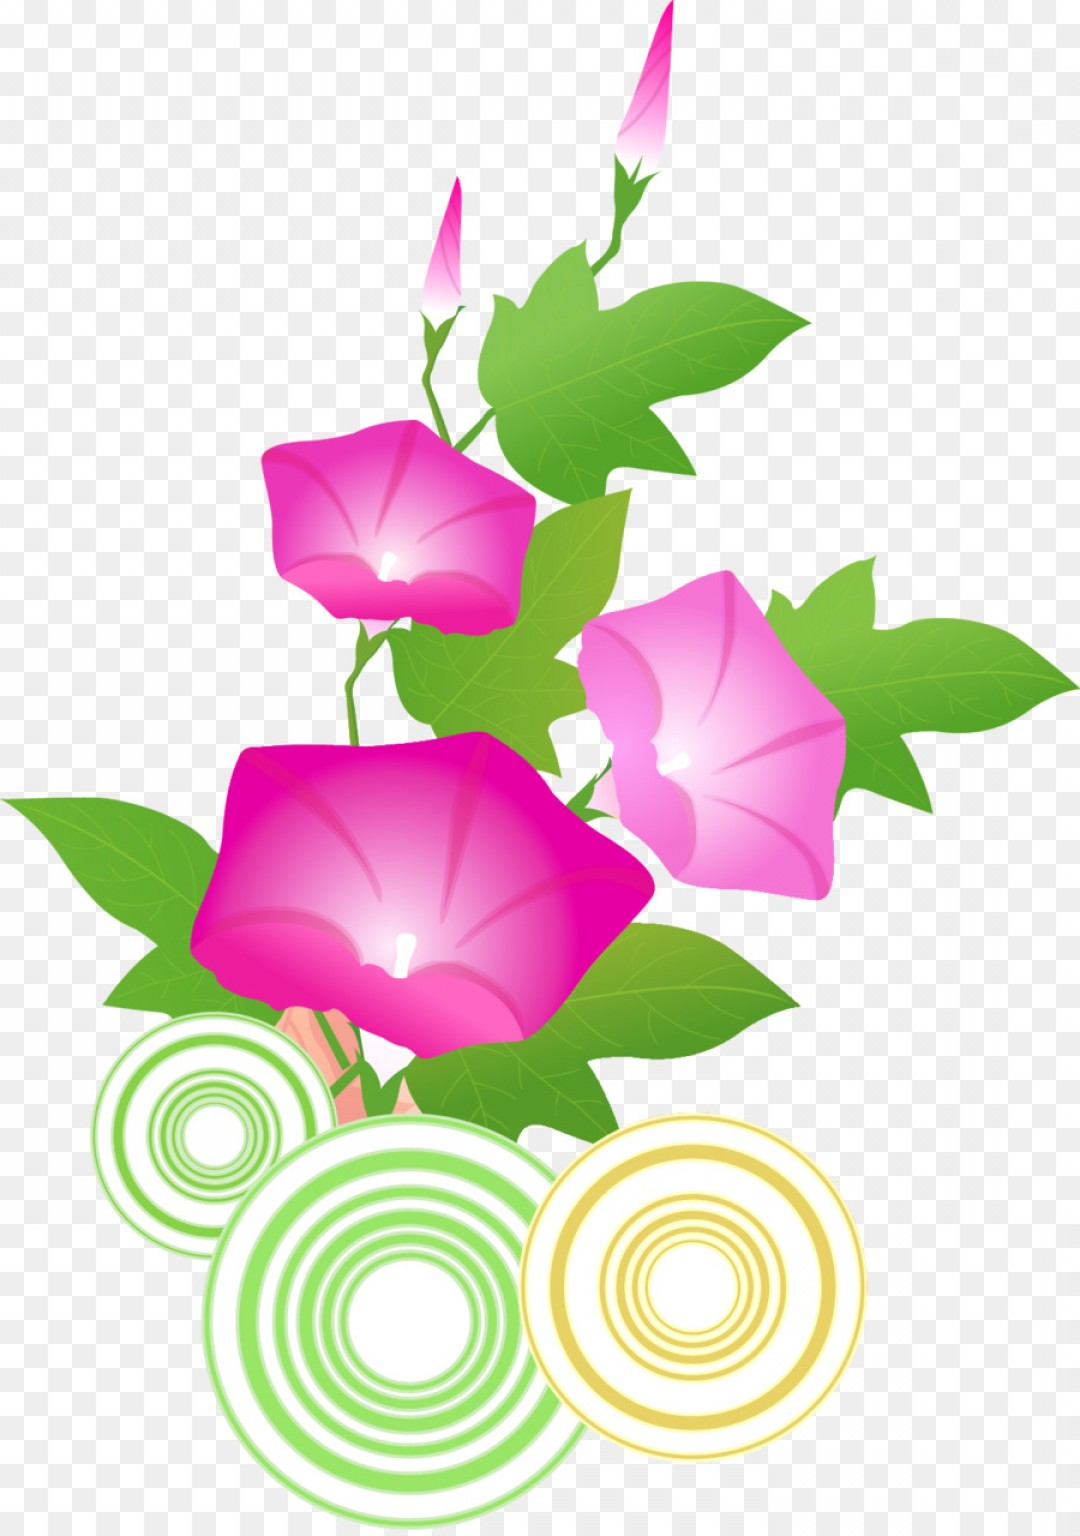 Morning Glory Transparent Vector: Png Vector Graphics Morning Glory Drawing Image No